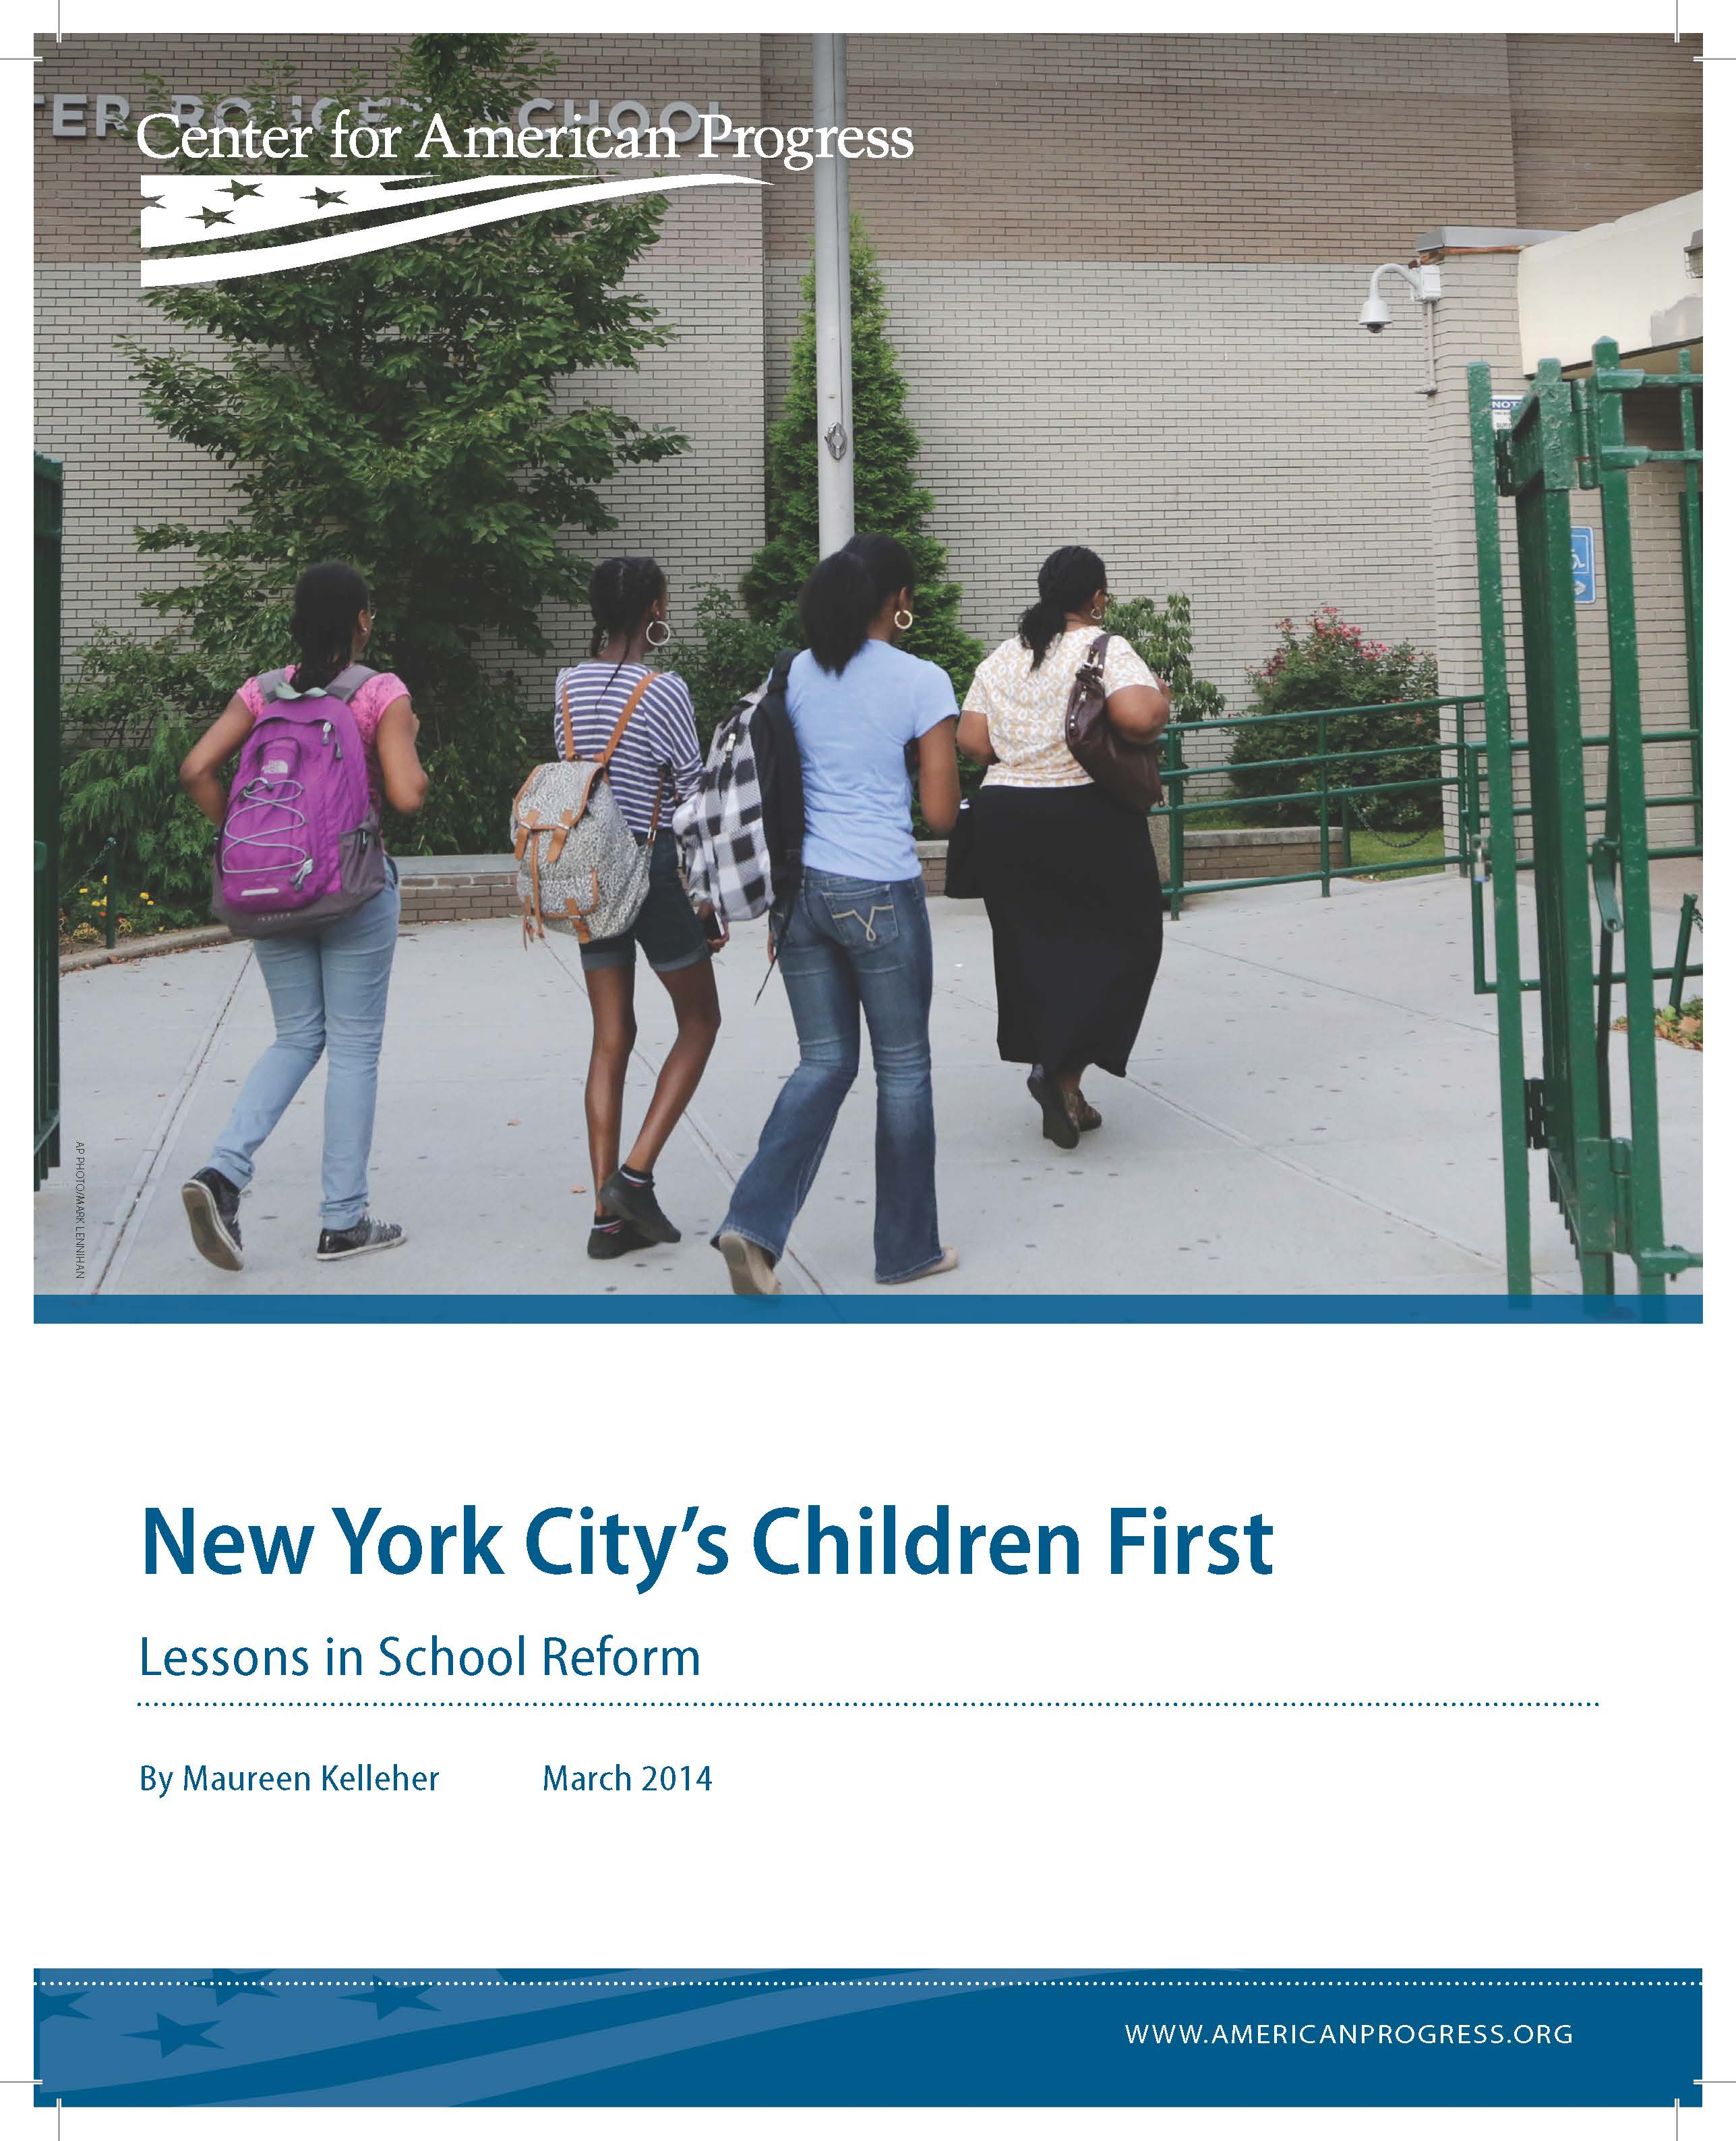 New York City's Children First